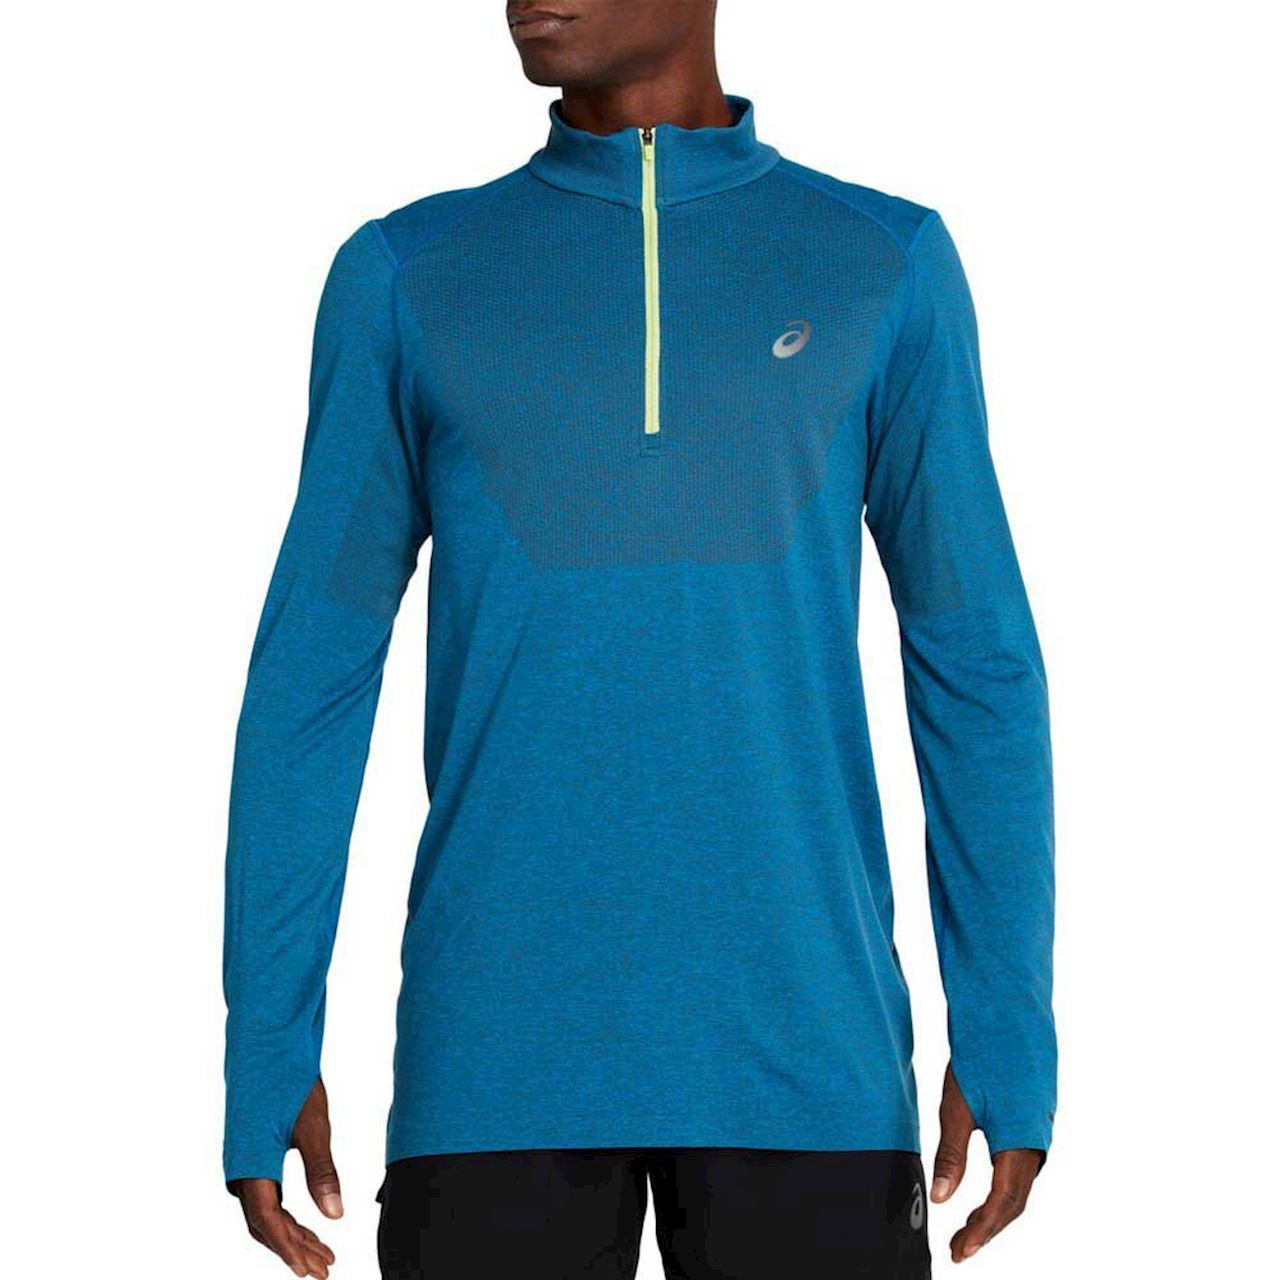 Лонгслив Asics RACE SEAMLESS 1/2 ZIP M - Director Blue